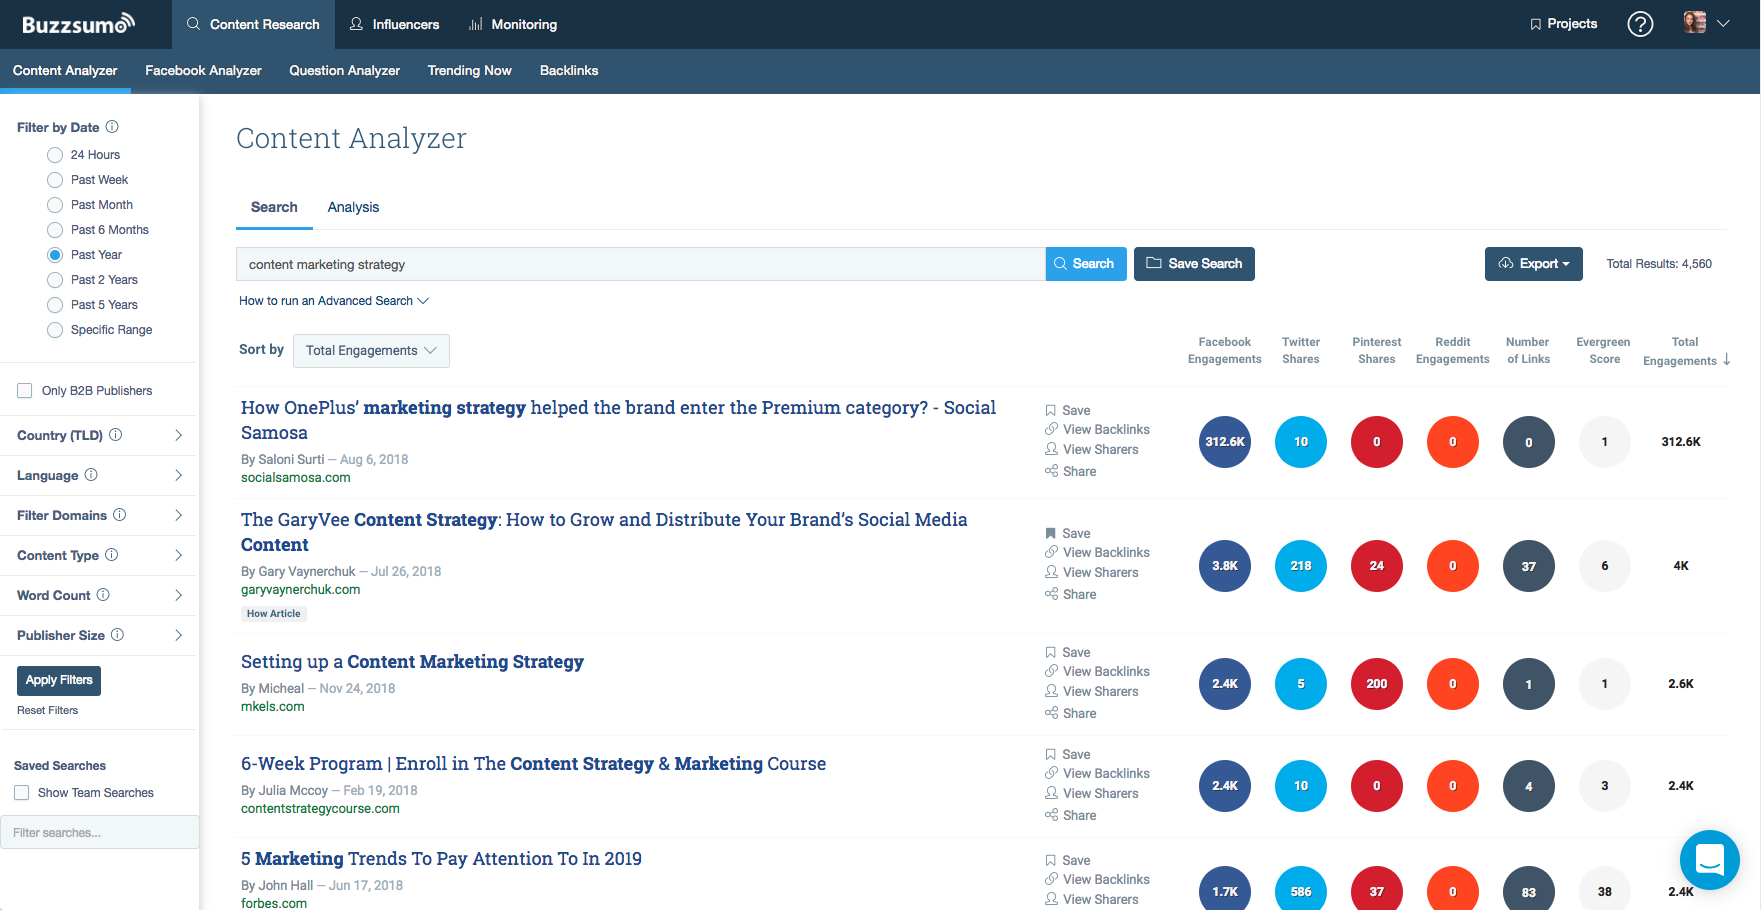 buzzsumo social media management and tracking tool